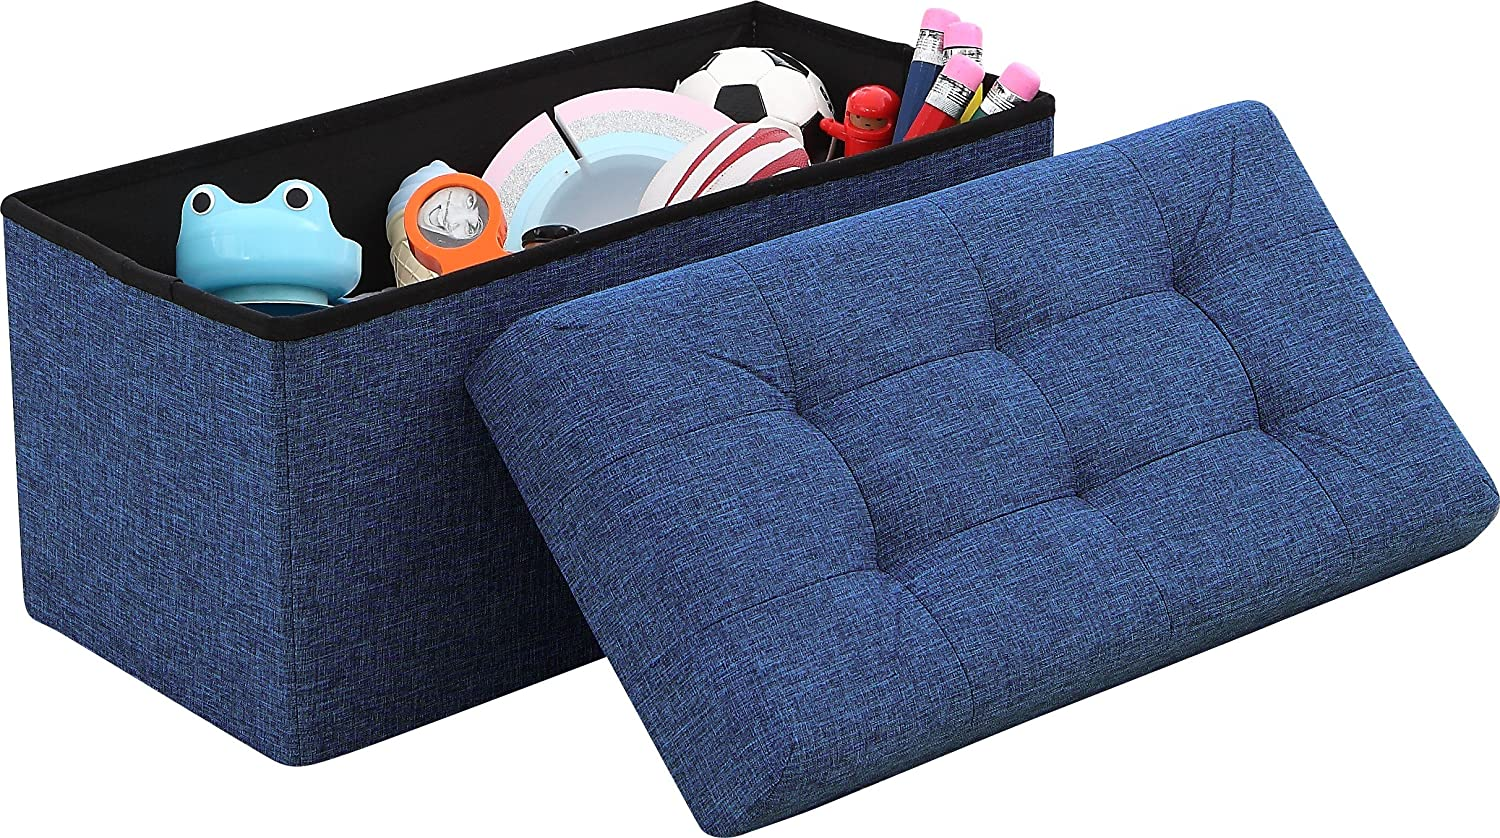 "Ornavo Home Foldable Tufted Linen Large Storage Ottoman Bench Foot Rest Stool/Seat - 15"" x 30"" x 15"" (Navy)"